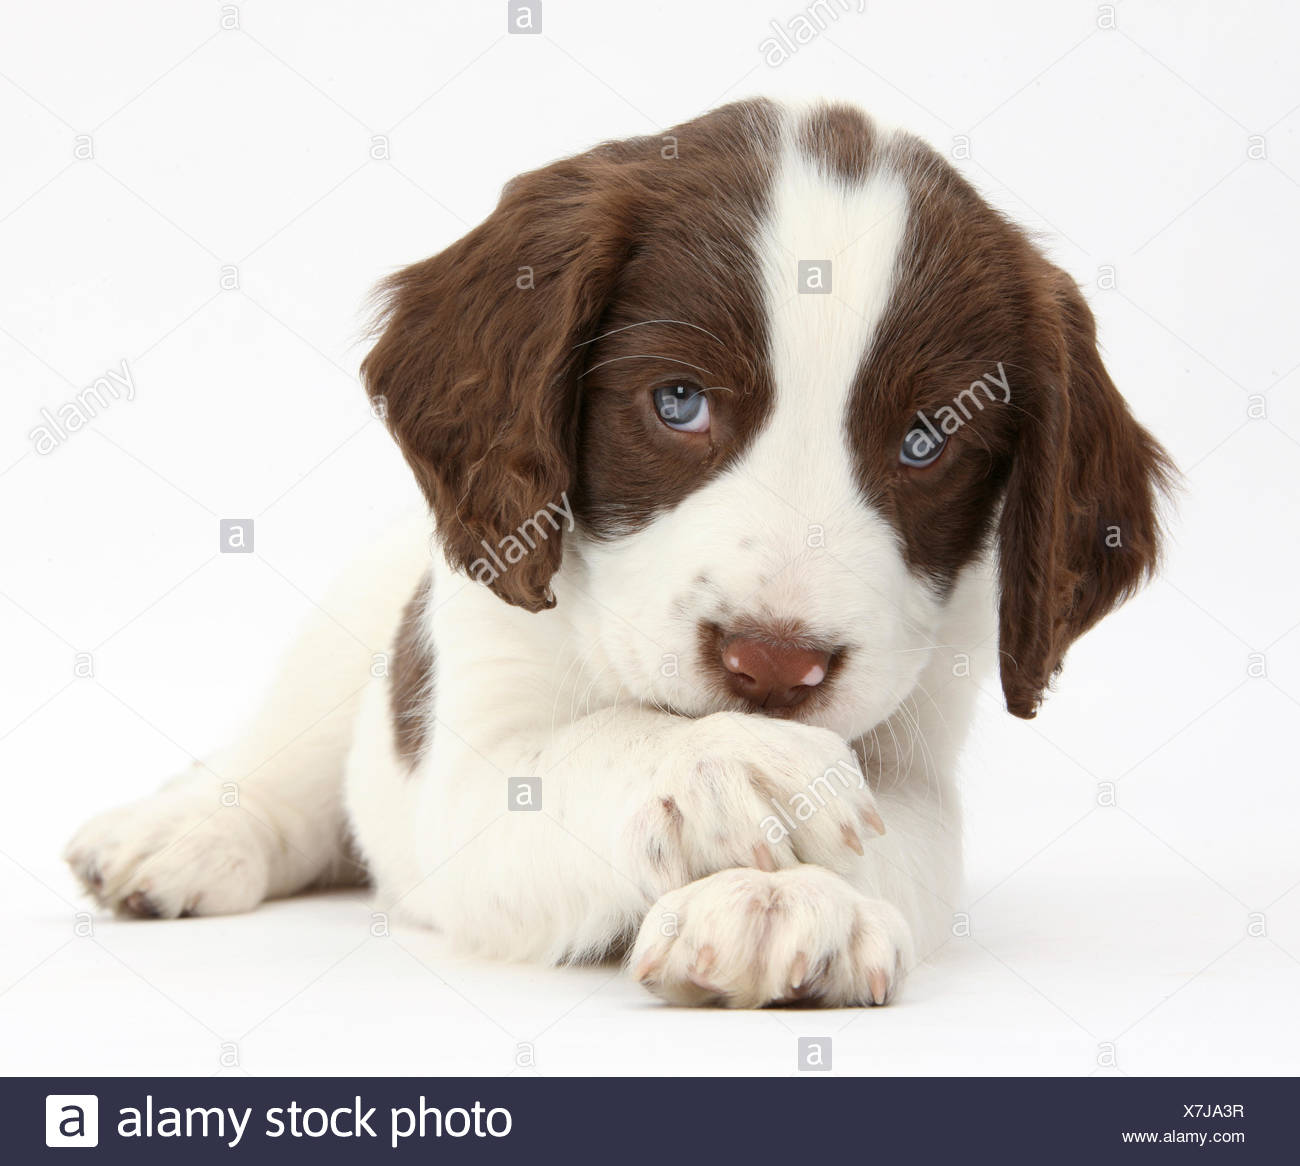 working english springer spaniel puppy 6 weeks lying with crossed